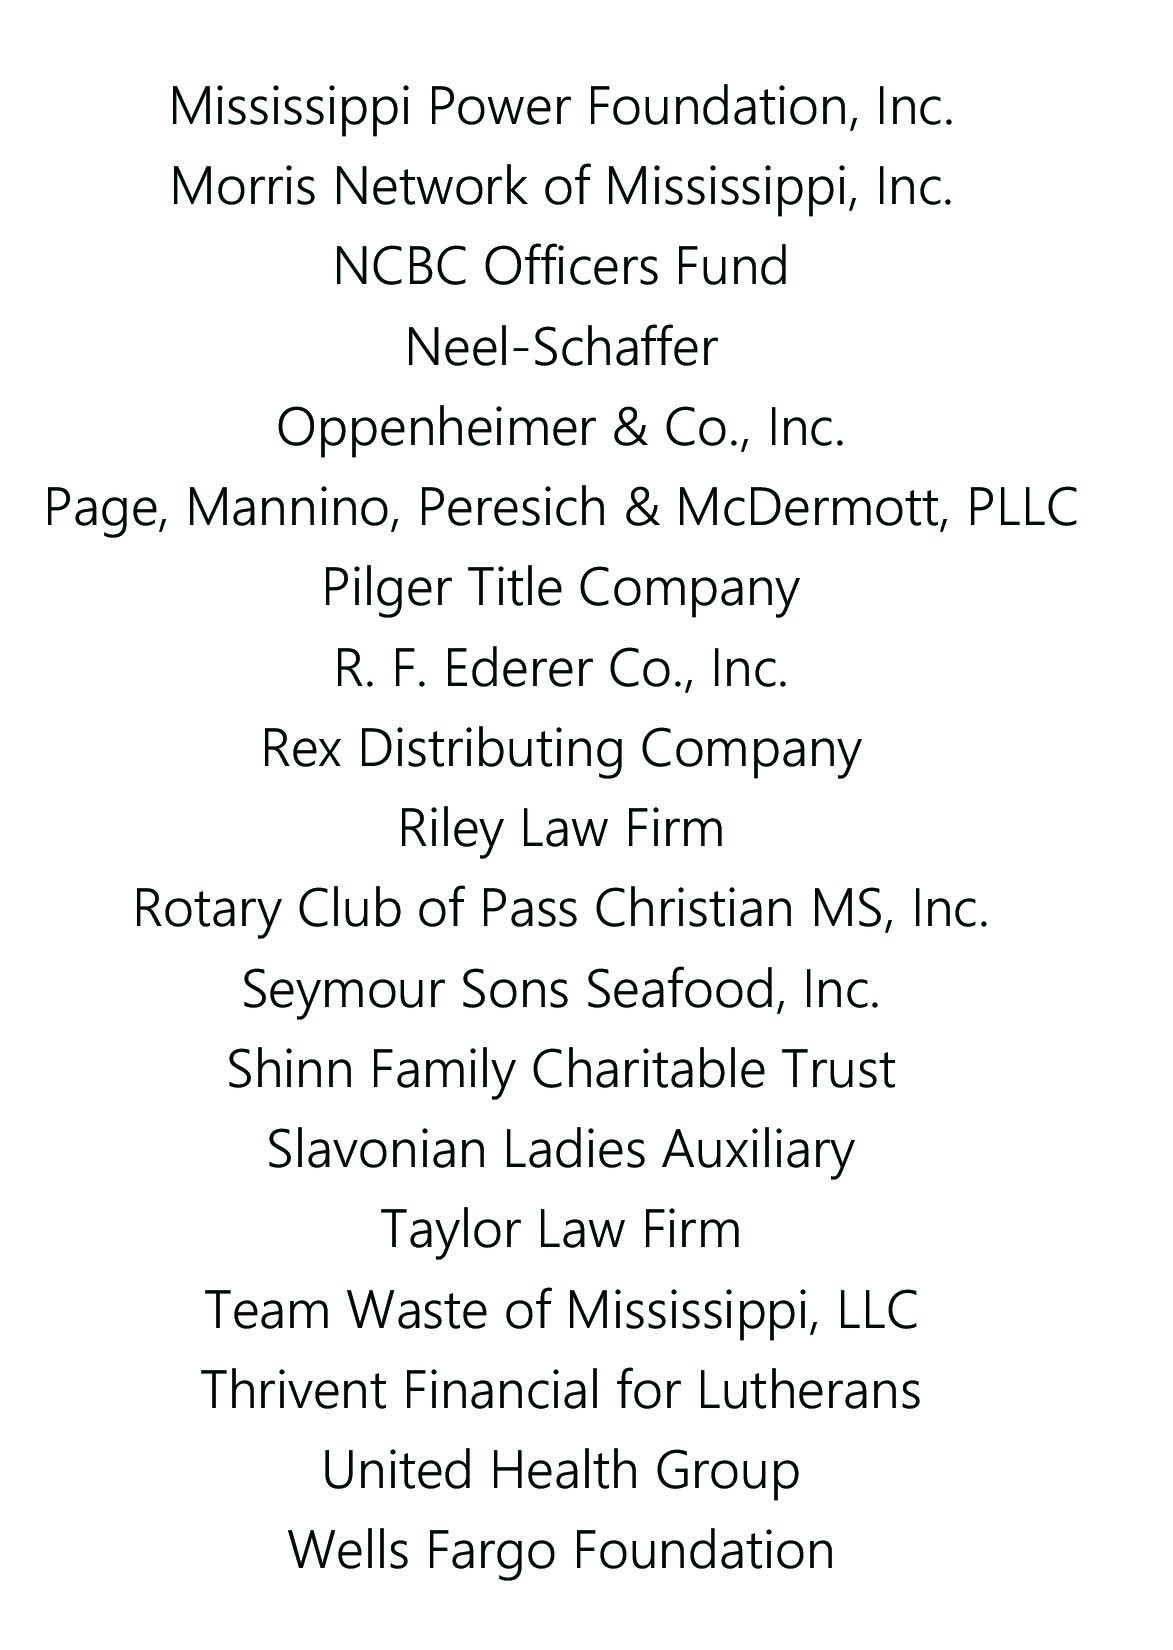 annual report list of donors for website.CSV